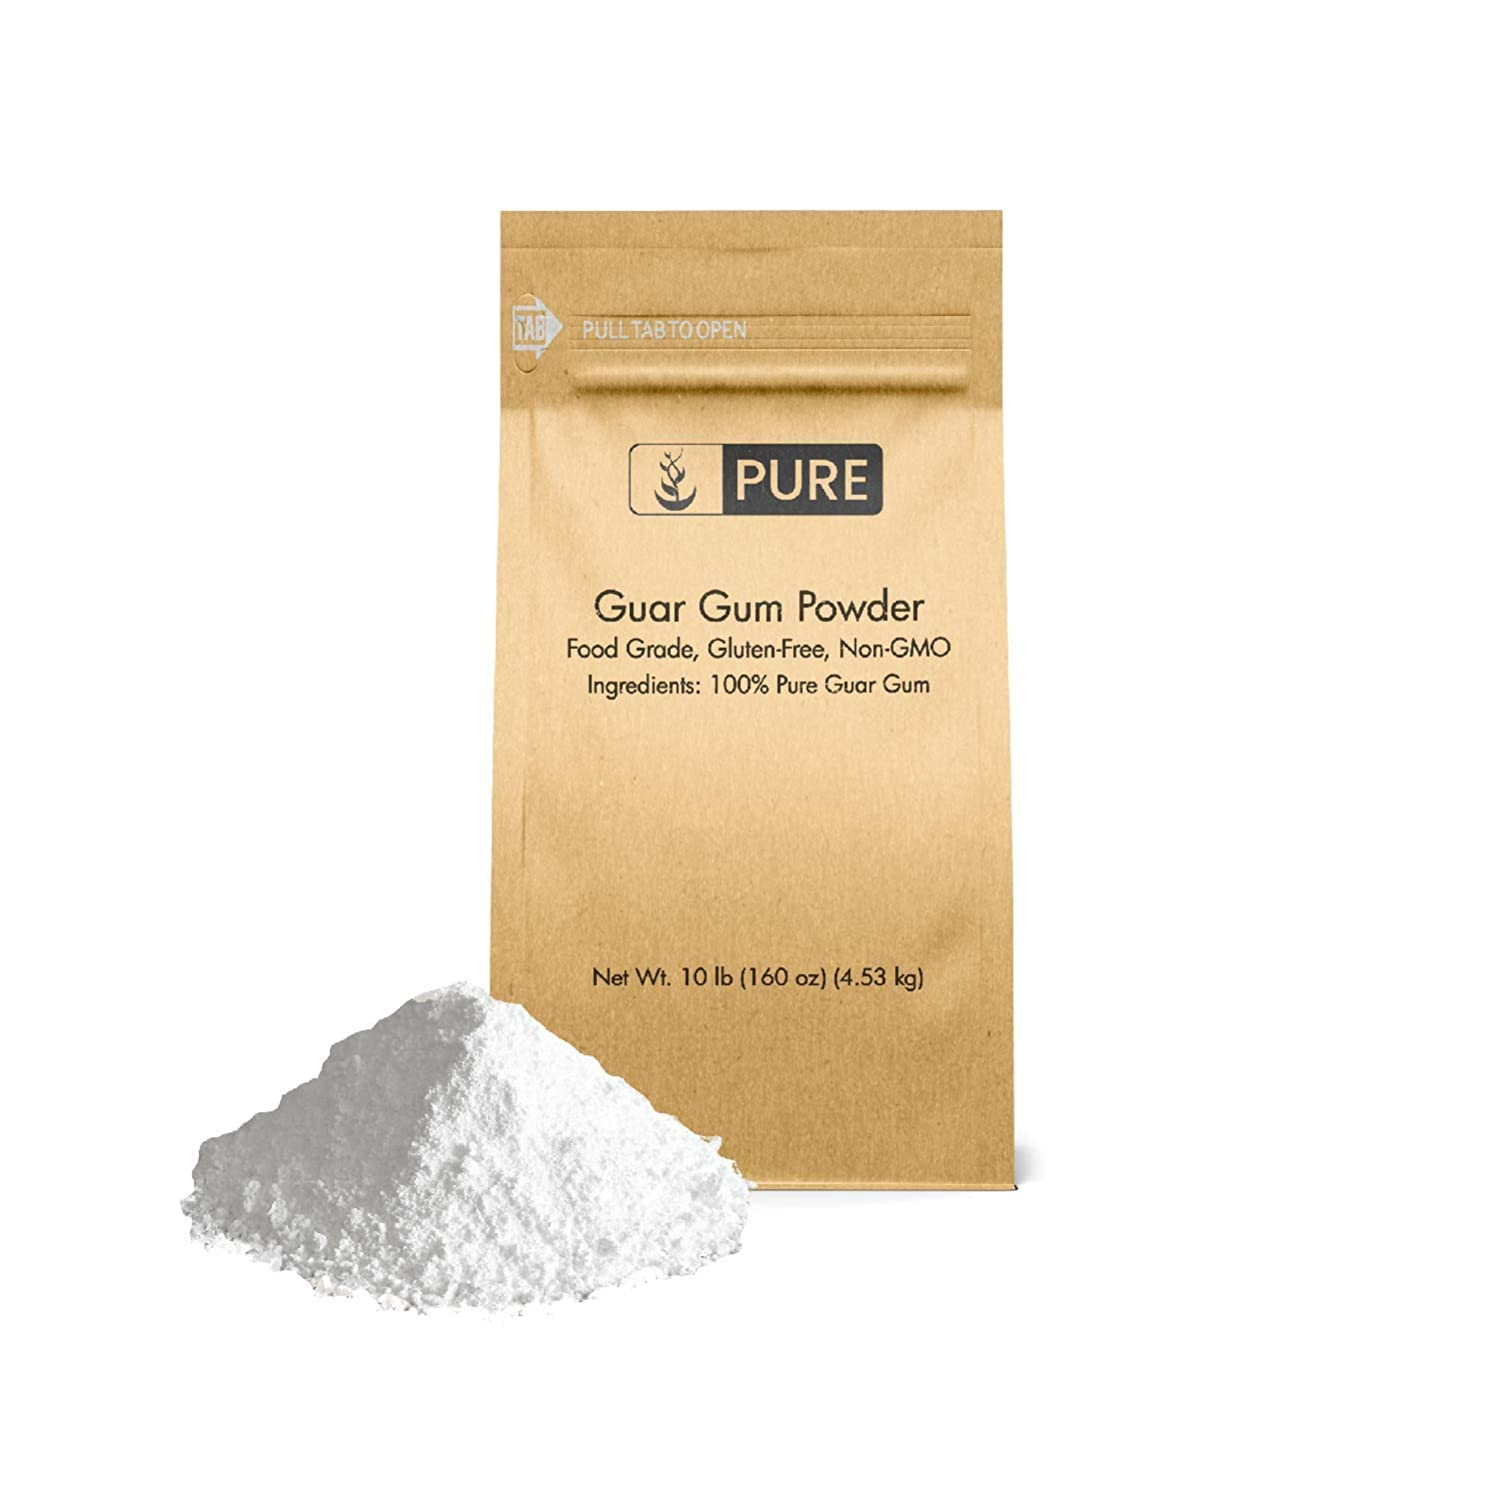 Guar Gum Powder (10 lb.) by Pure Ingredients, Food Safe , Gluten-Free, Non-GMO, Thickening Agent